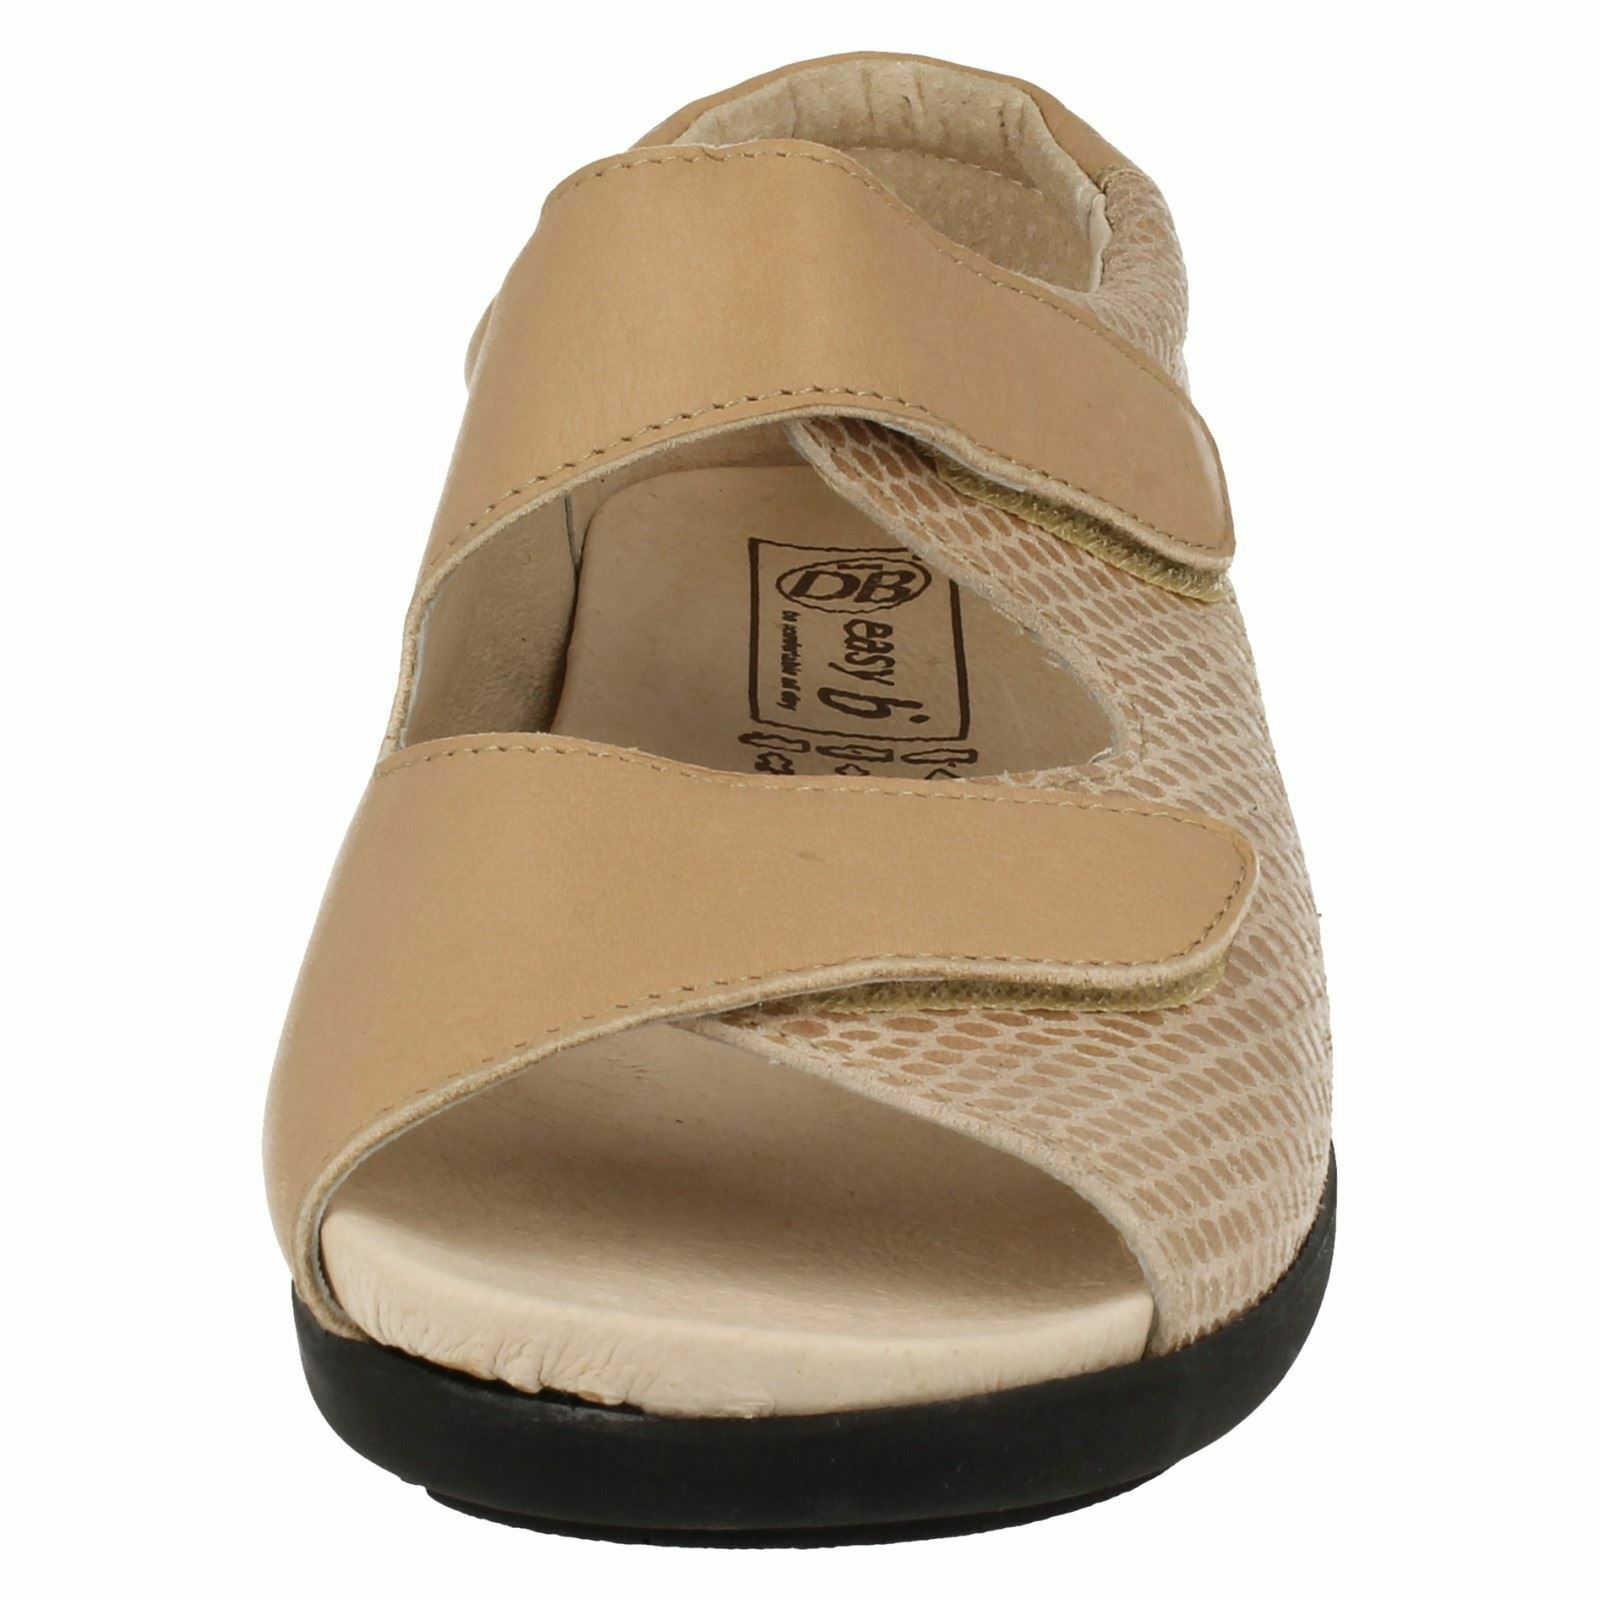 BLISS LADIES EASY B TOE DB OPEN TOE B FLAT CASUAL LEATHER RIPTAPE STRAP SUMMER SANDALS 44e769